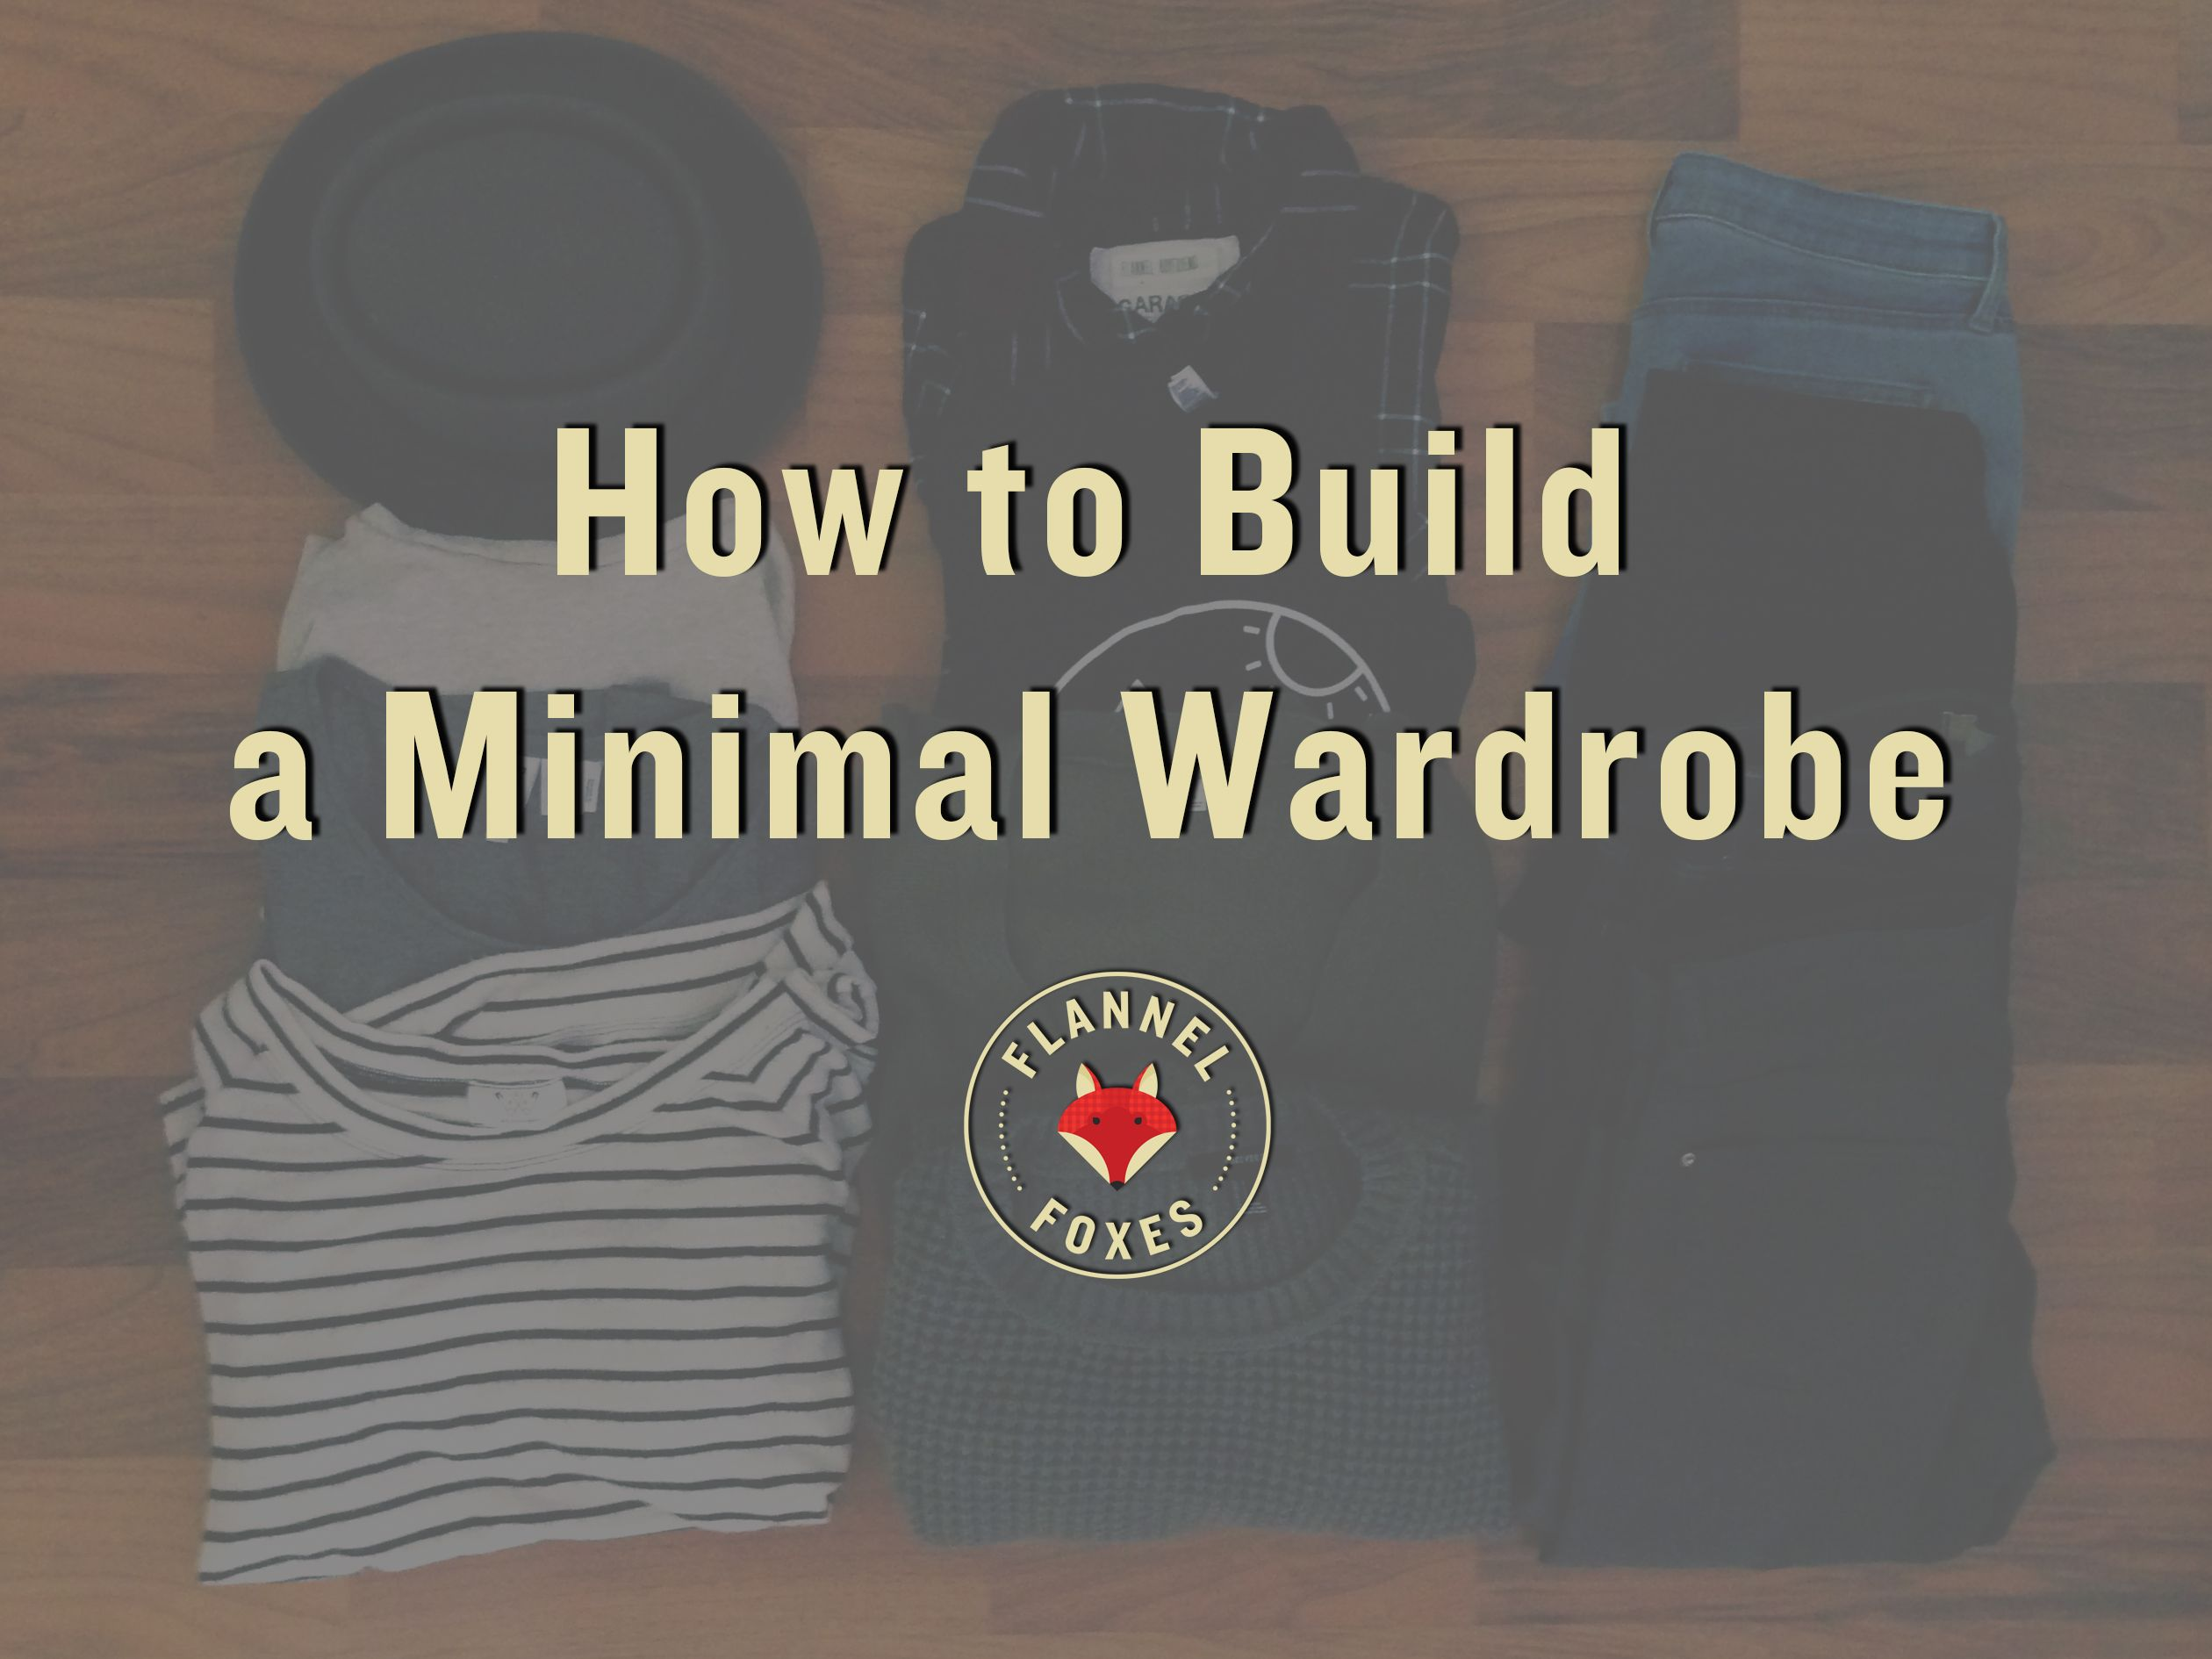 How To Build (and keep) a Minimal Wardrobe. Flannel Foxes Fashion Blog discusses how to ensure you only buy clothing you'll love for a long time.